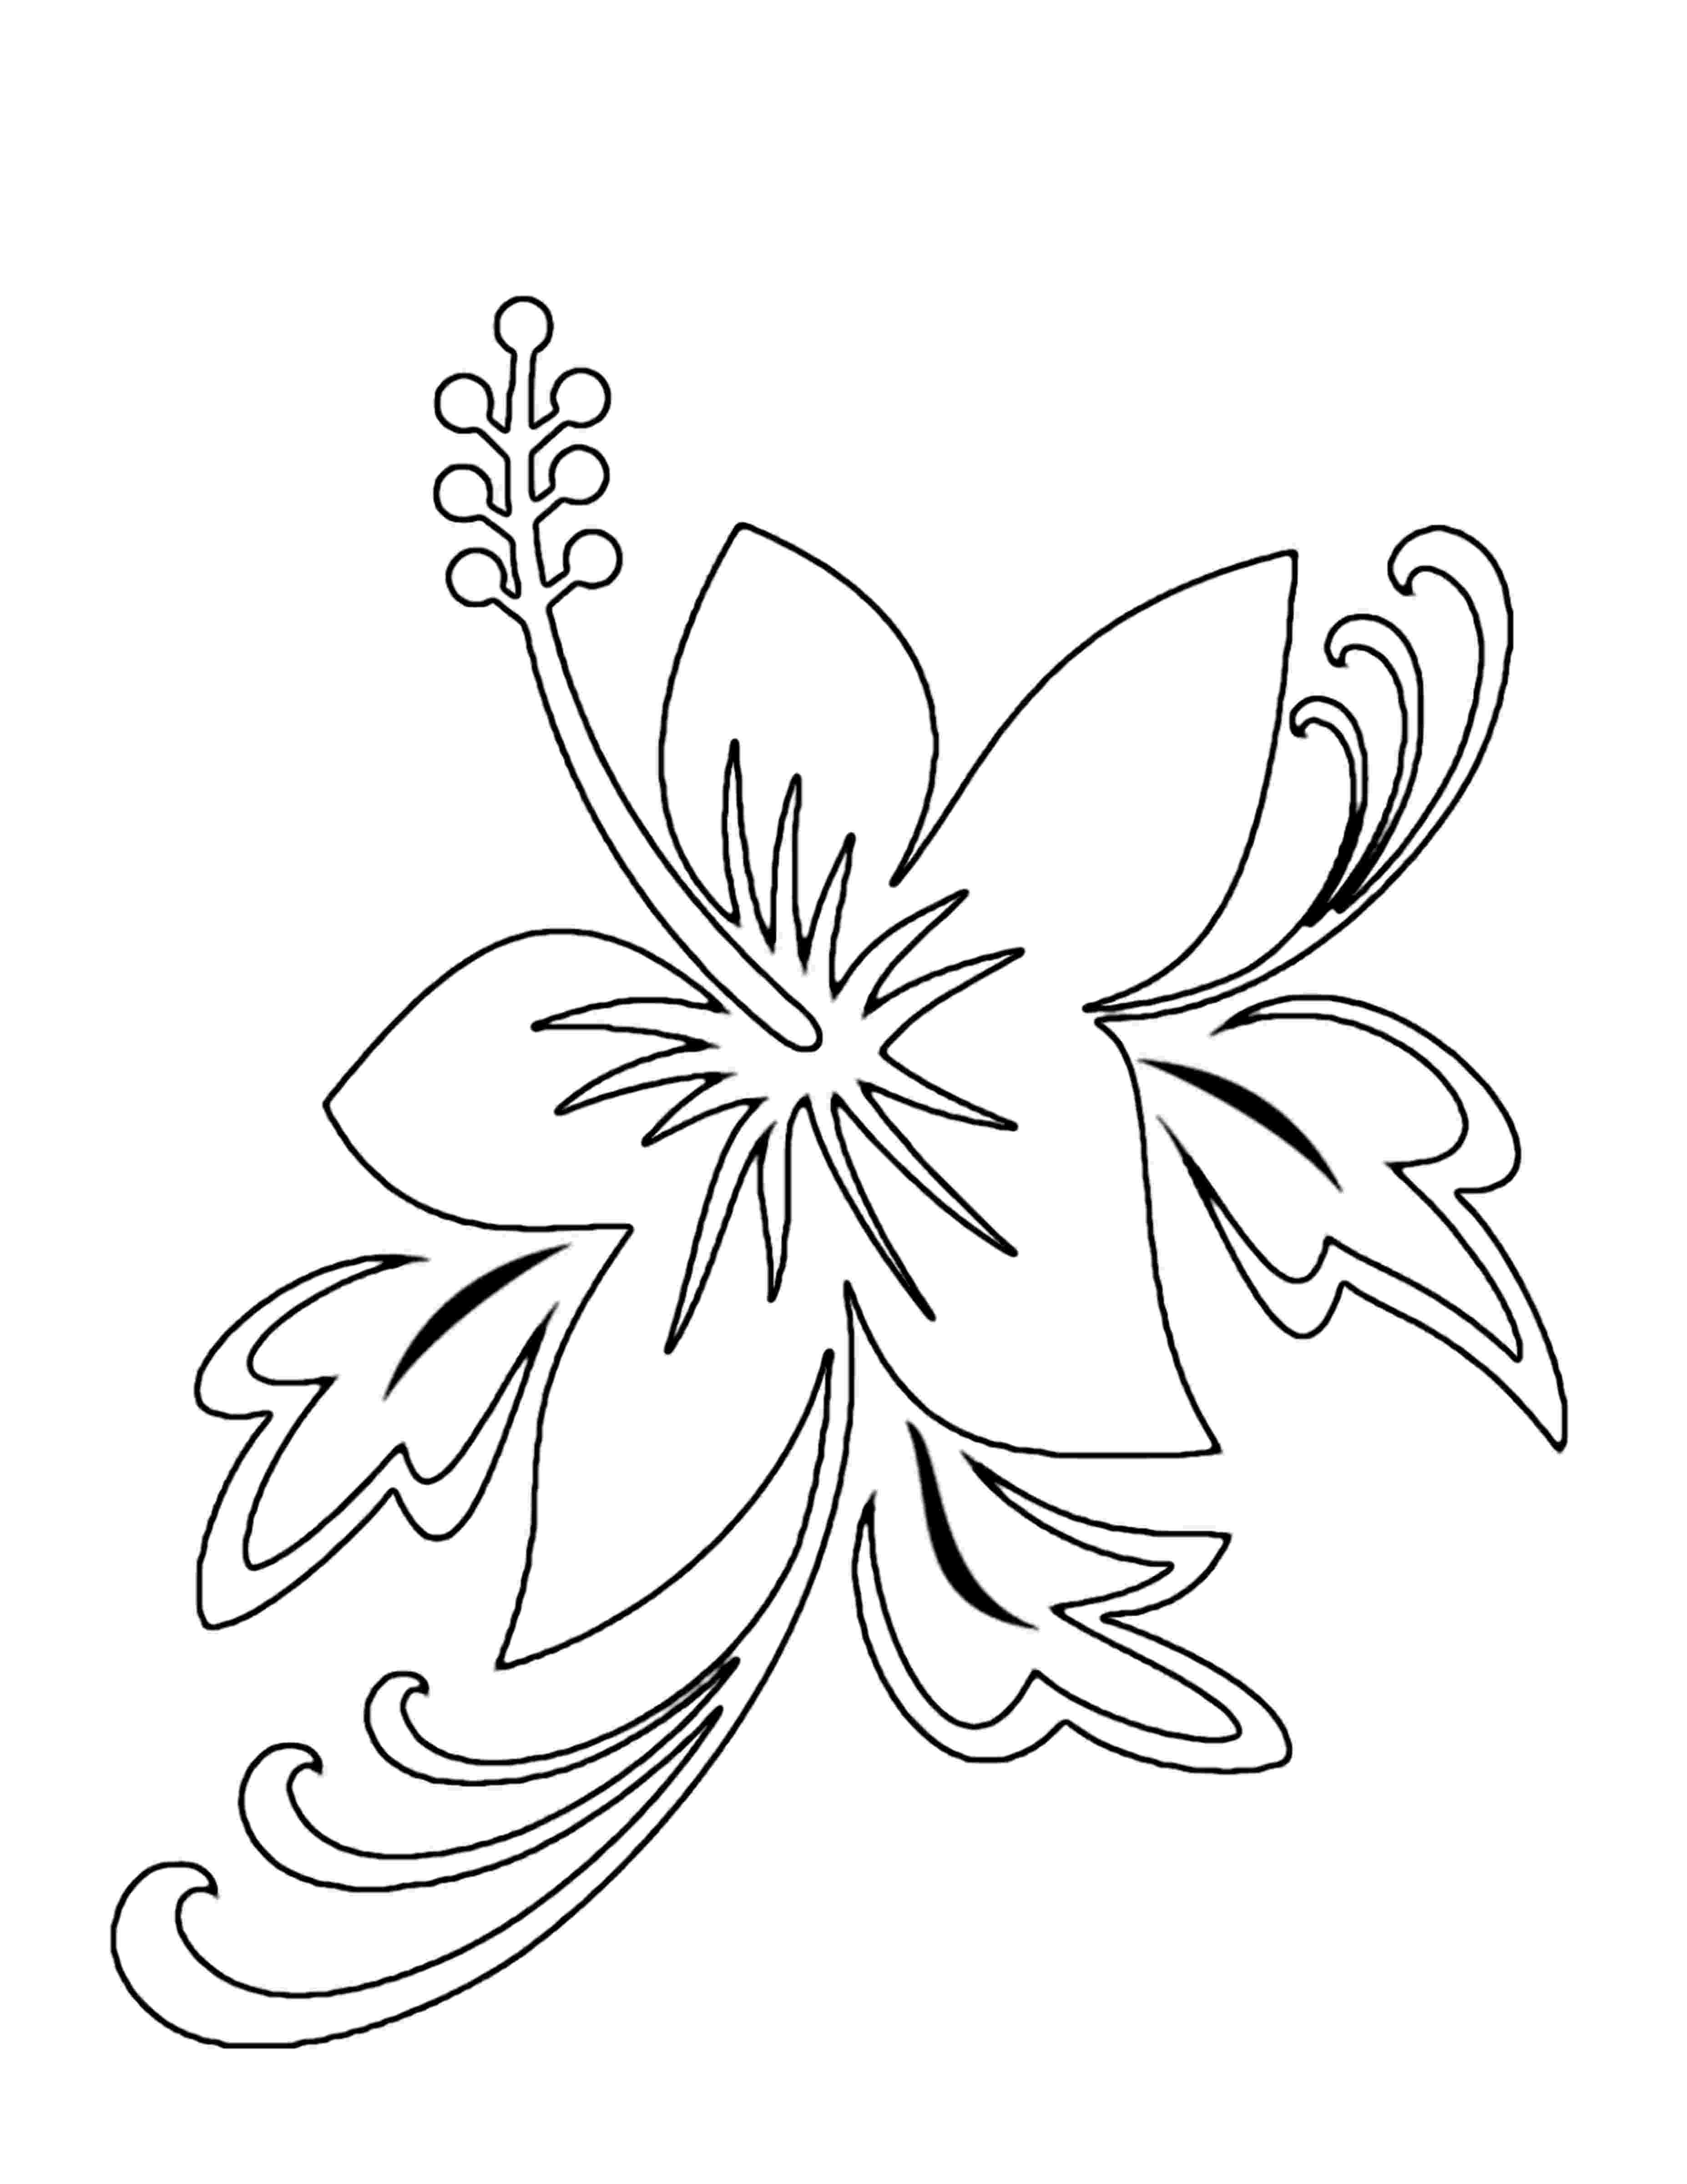 flowers to color print free printable flower coloring pages for kids best flowers to print color 1 1